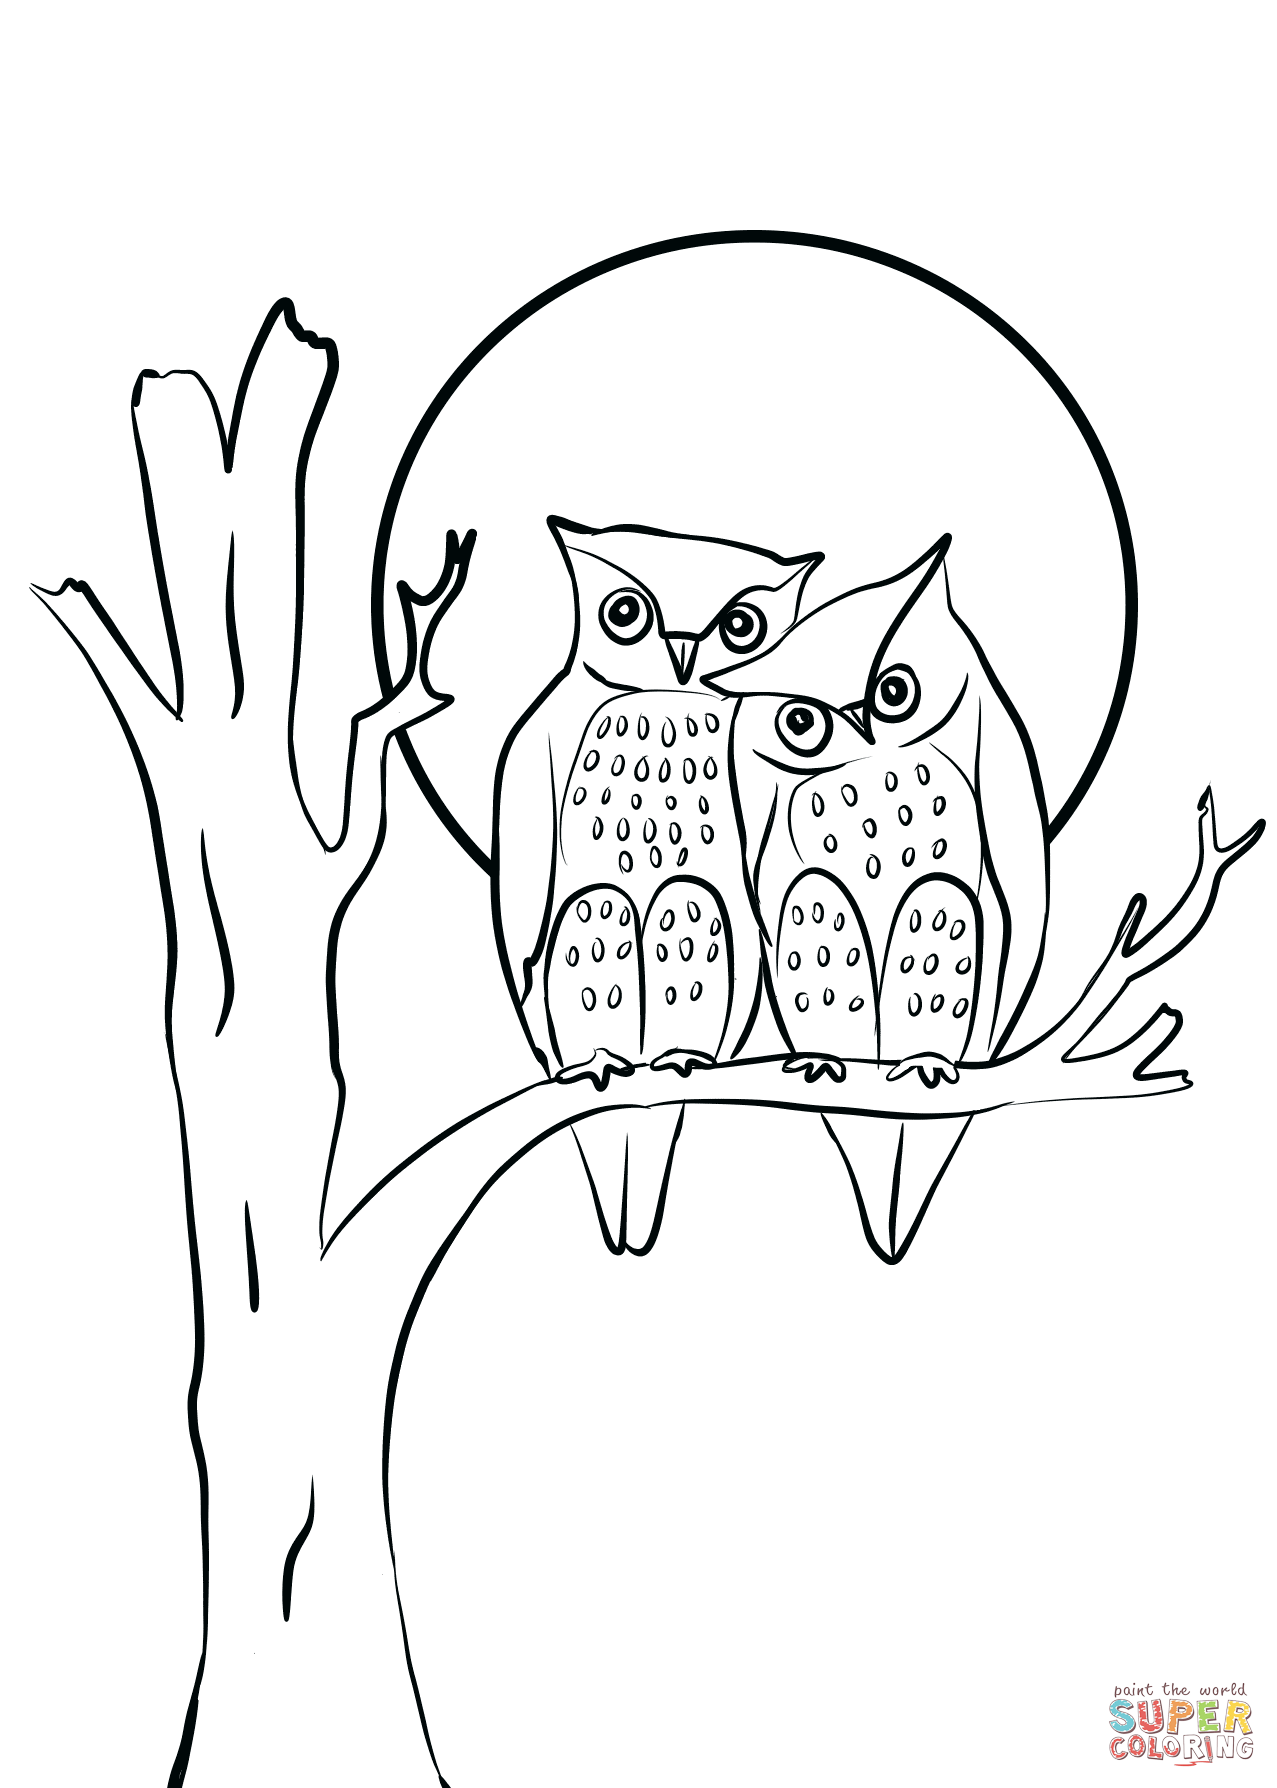 amour love drawing Bird coloring pages, Owl coloring